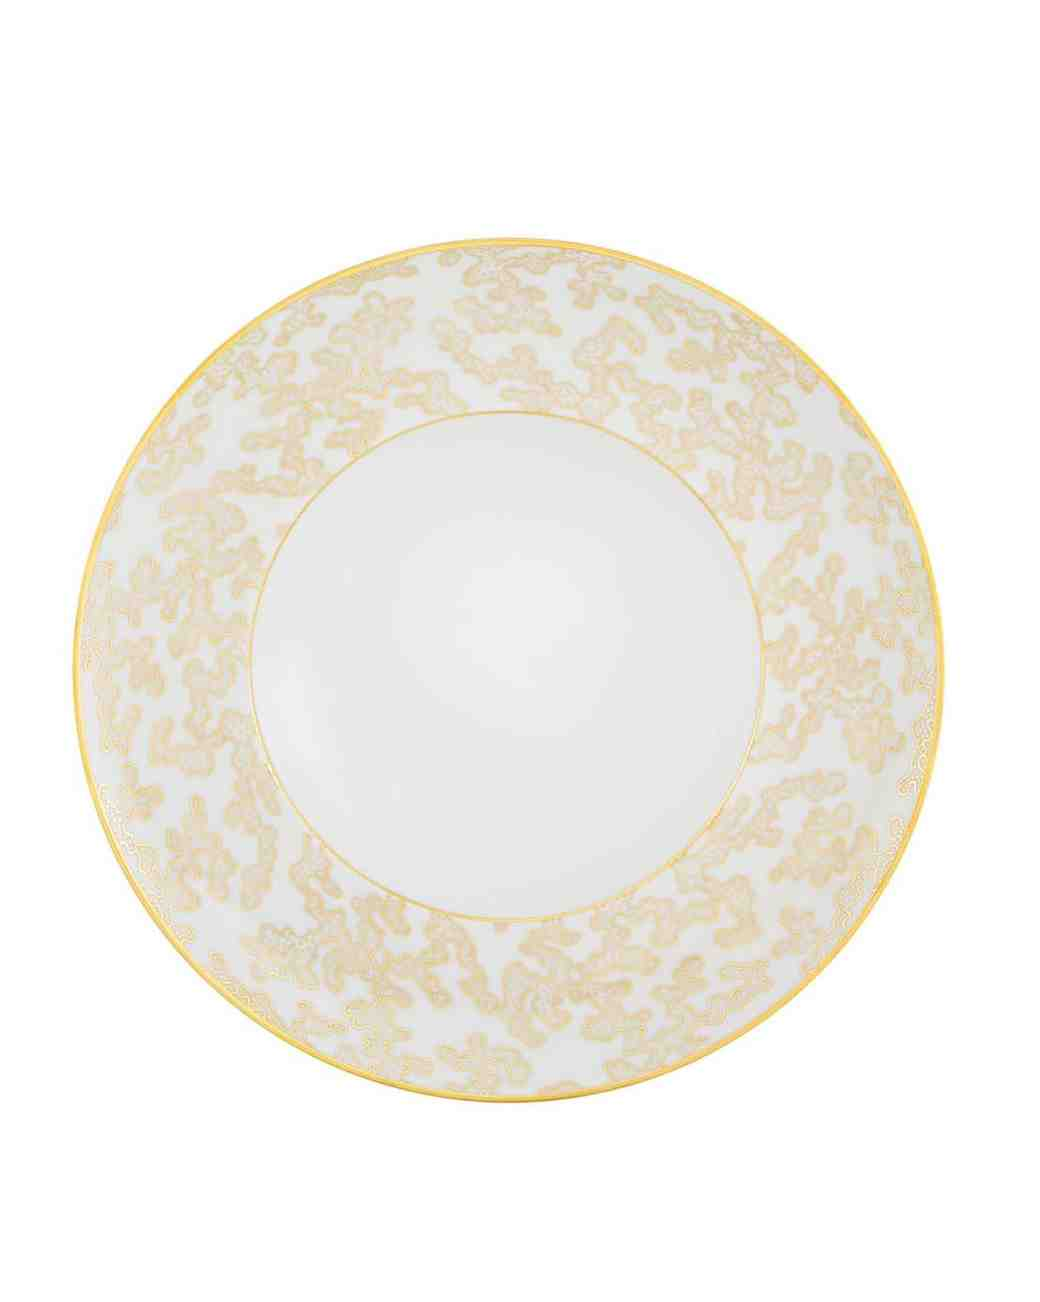 white and gold dessert plate